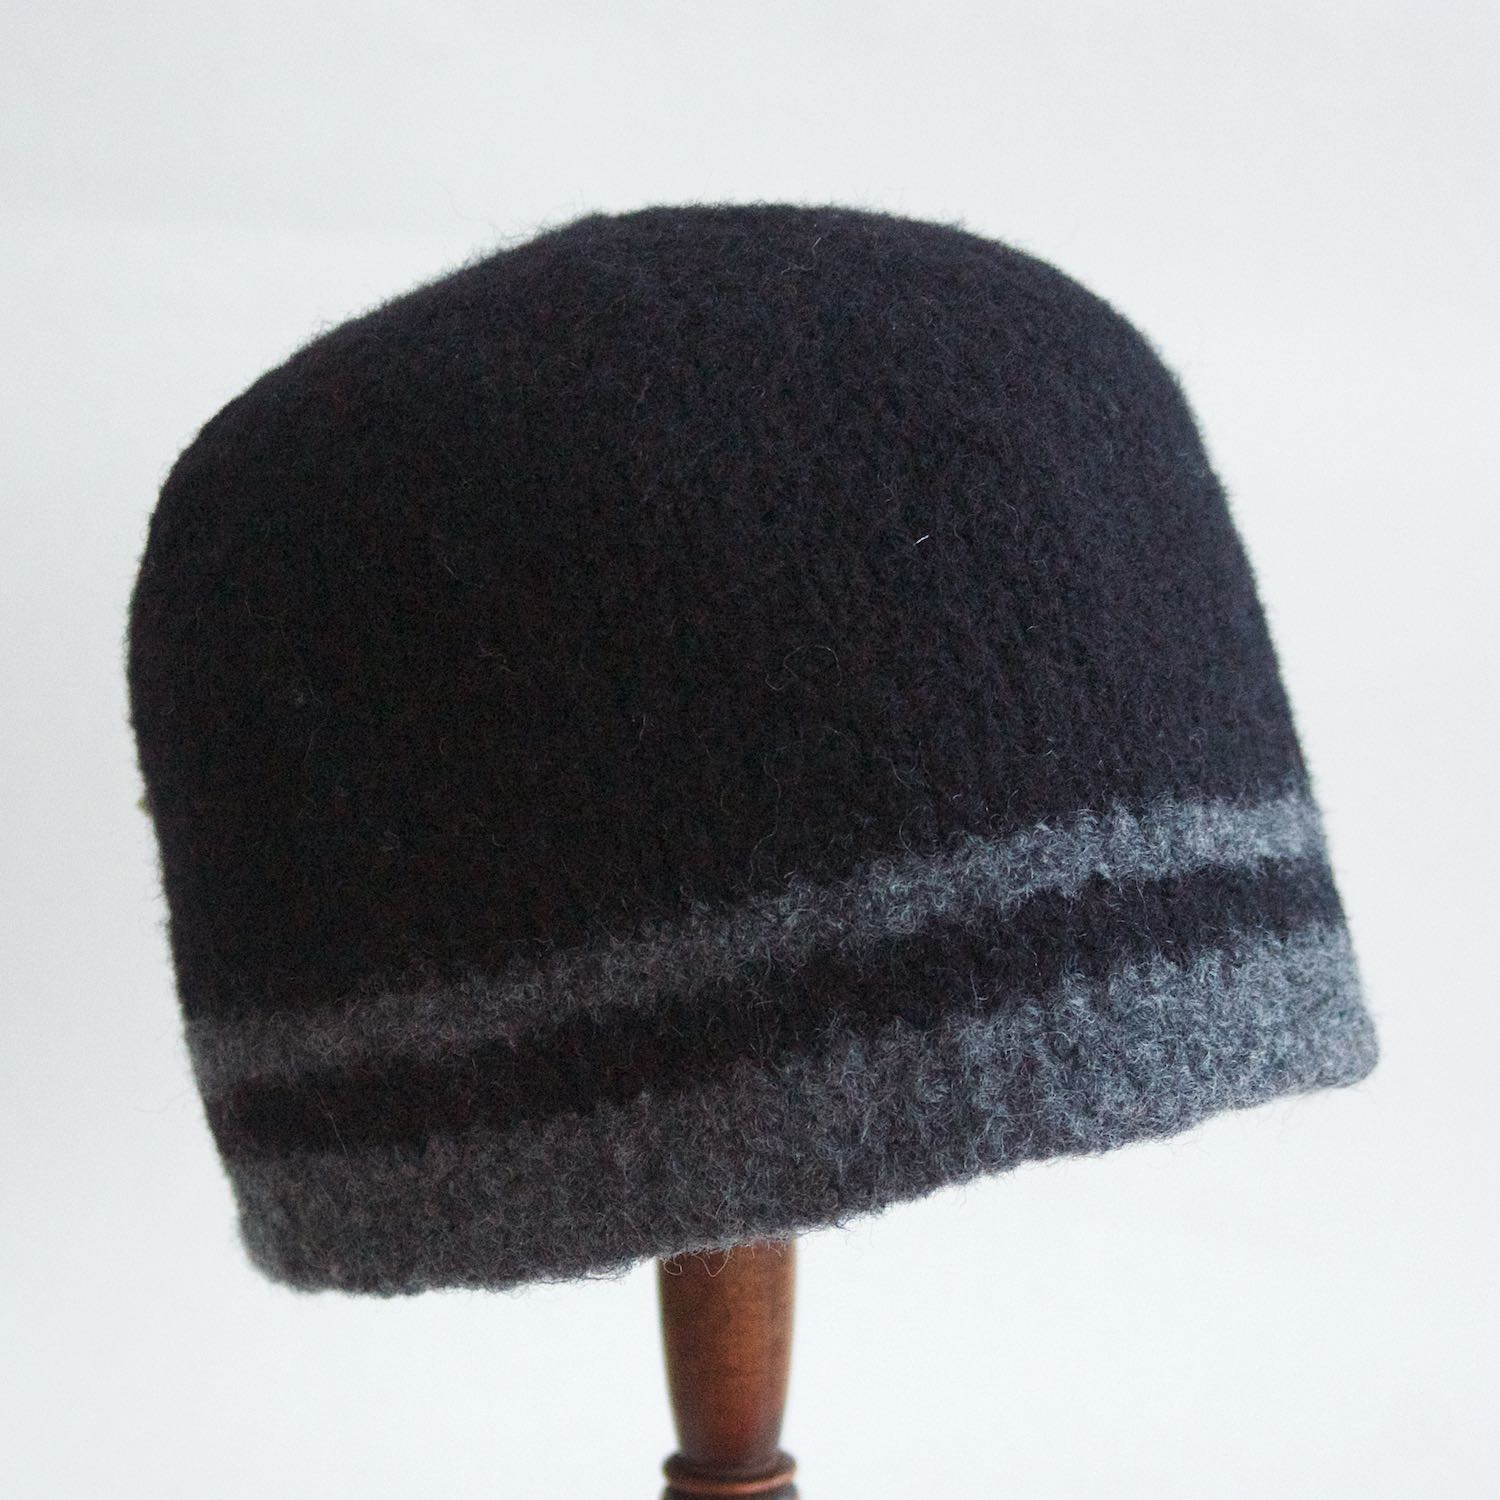 Lynn's Lids unisex striped Toque